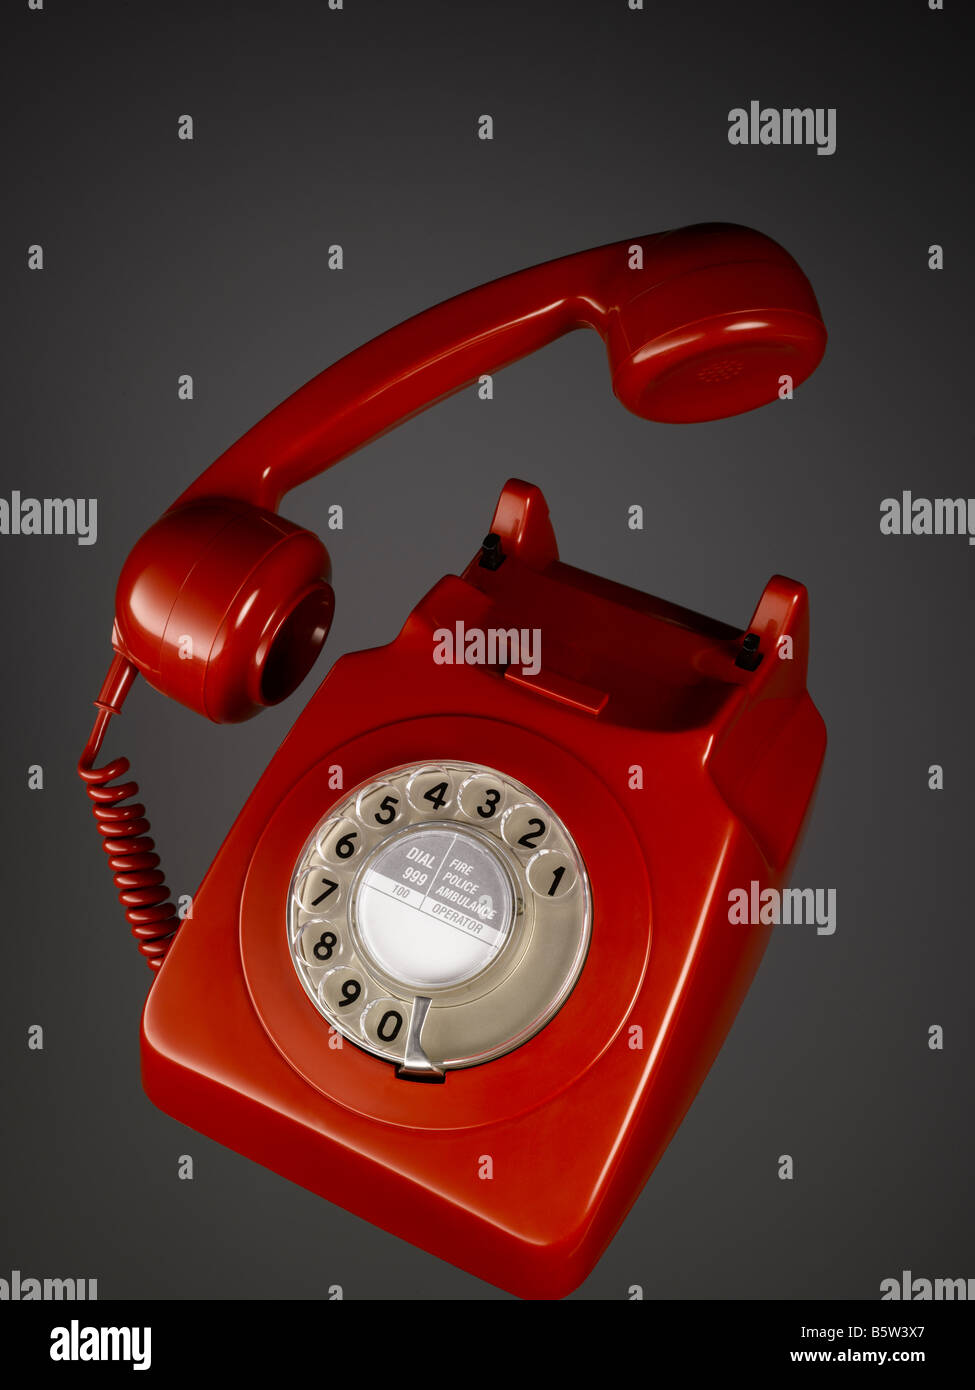 A classic red bakelite telephone - Stock Image